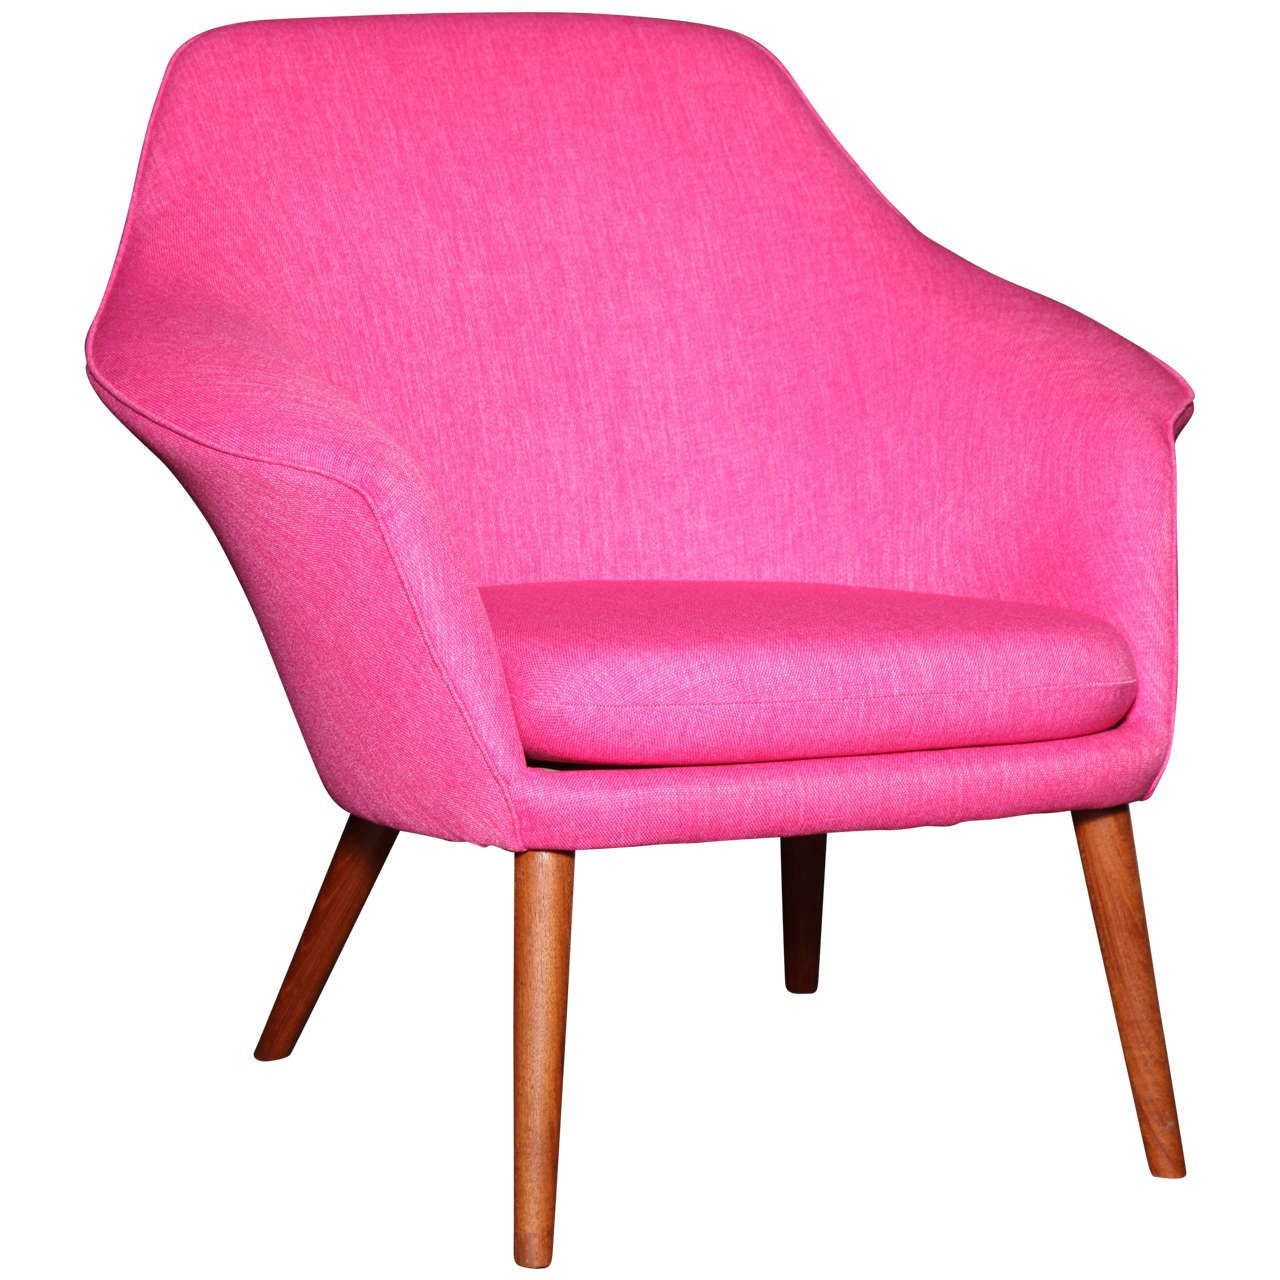 pink shell or womb chair by hans olsen | antiques, shells and